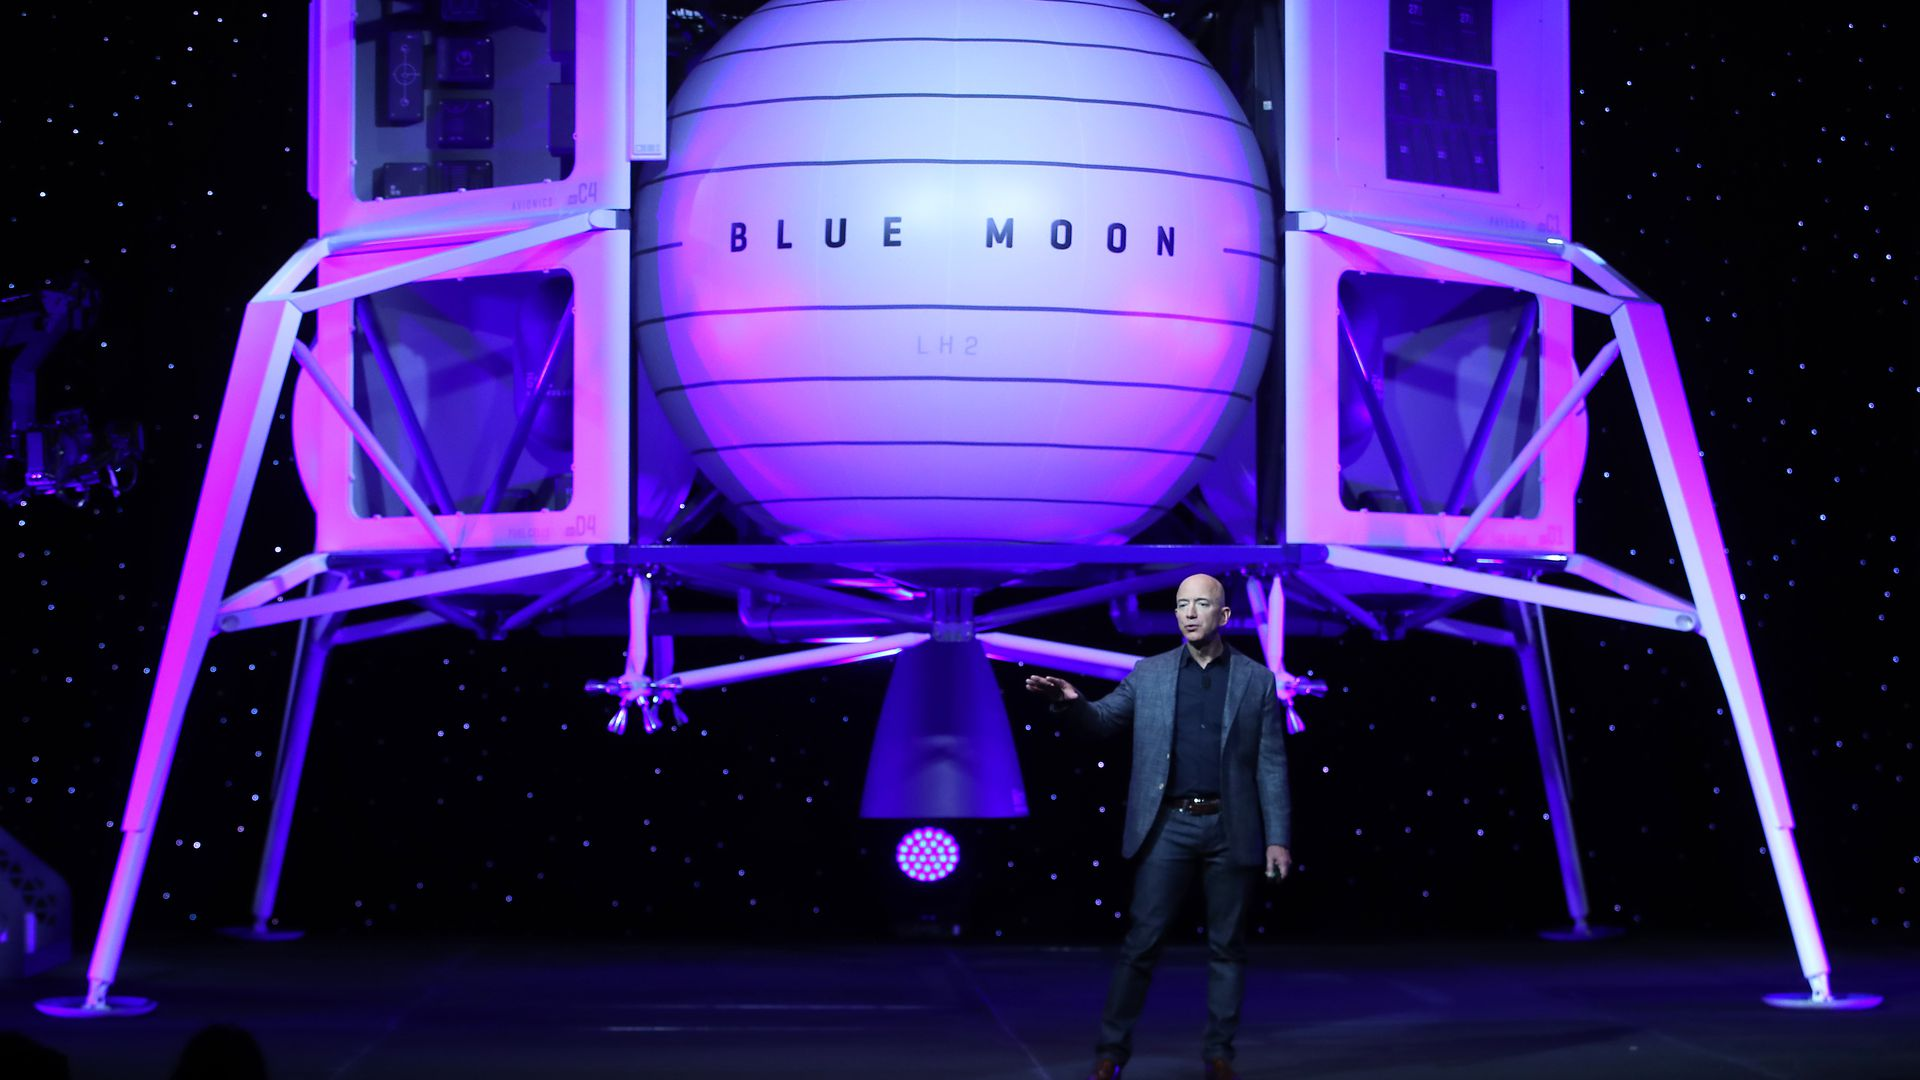 Jeff Bezos in front of Blue Origin's new lunar landing module Blue Moon